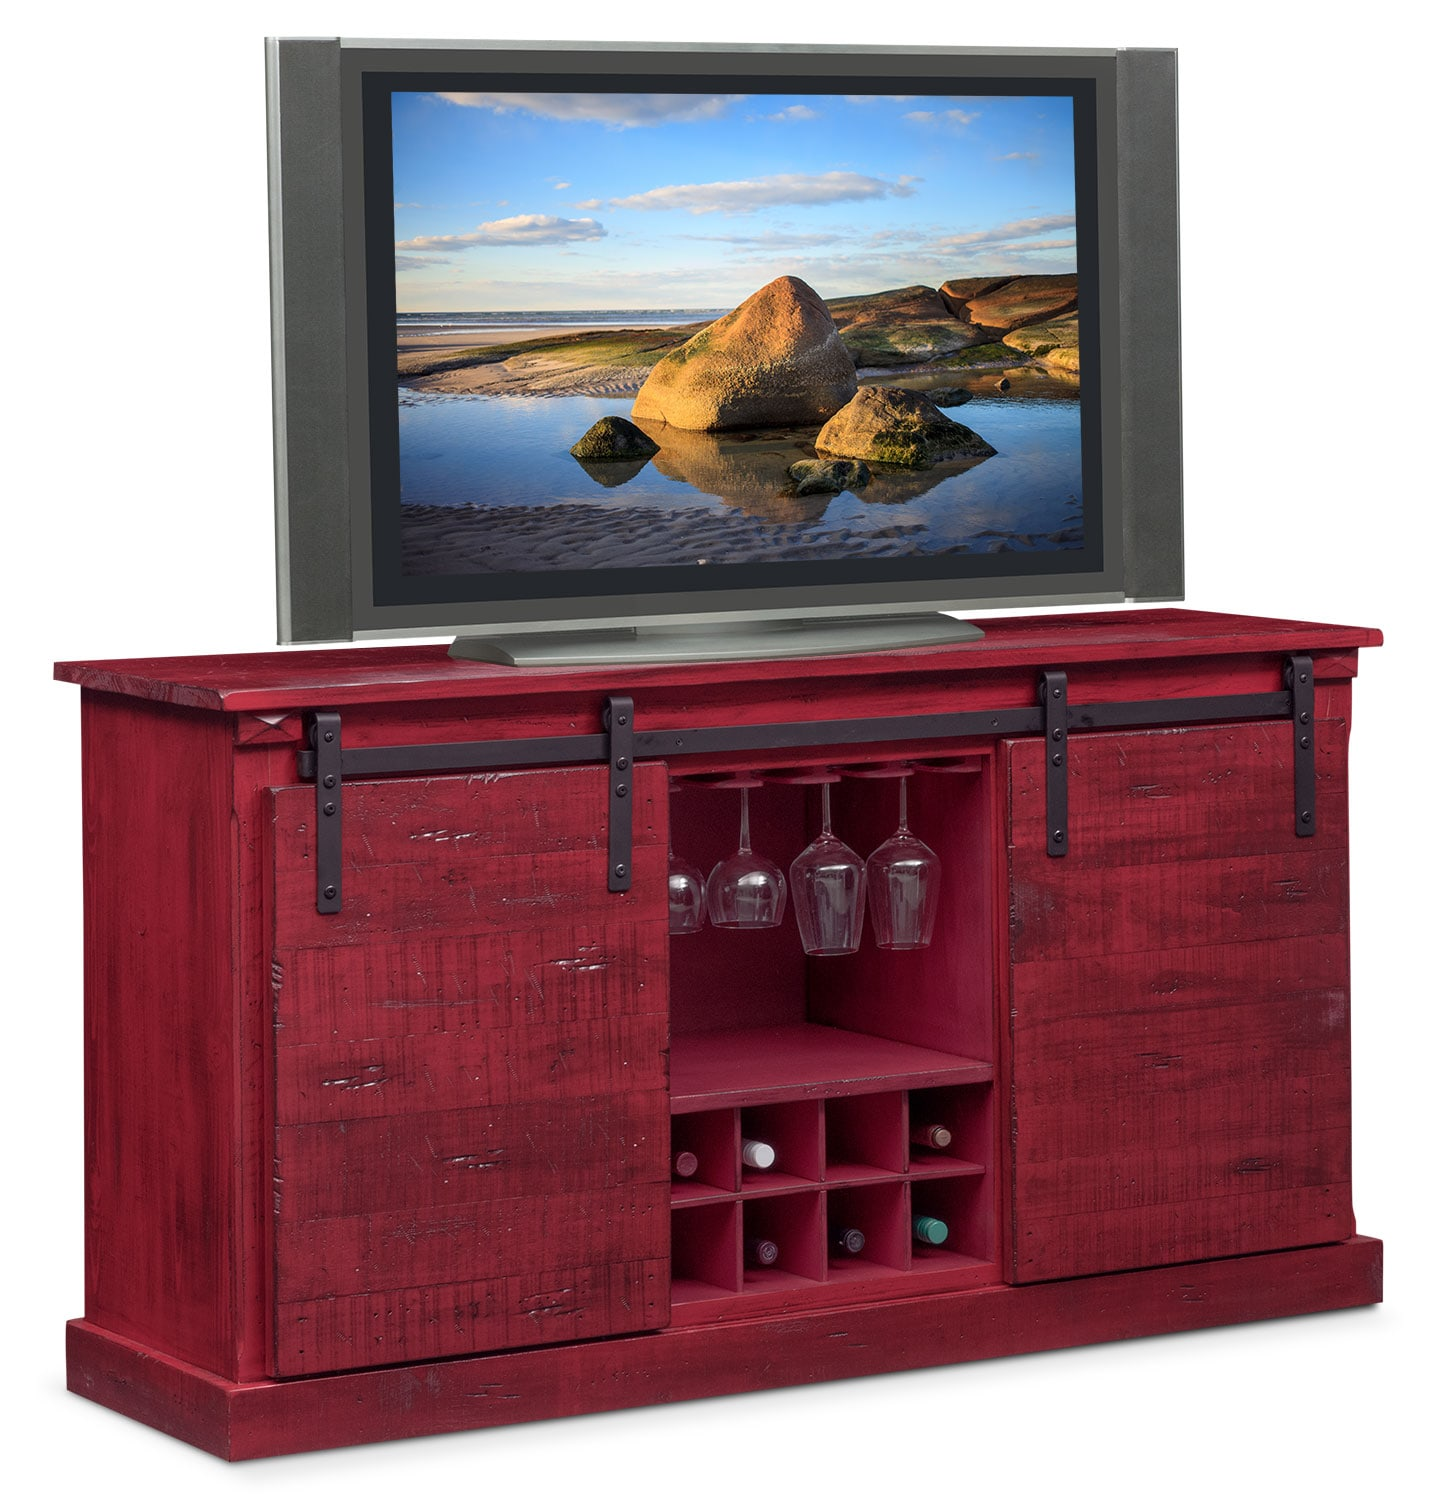 Ashcroft Media Credenza with Wine Storage - Red